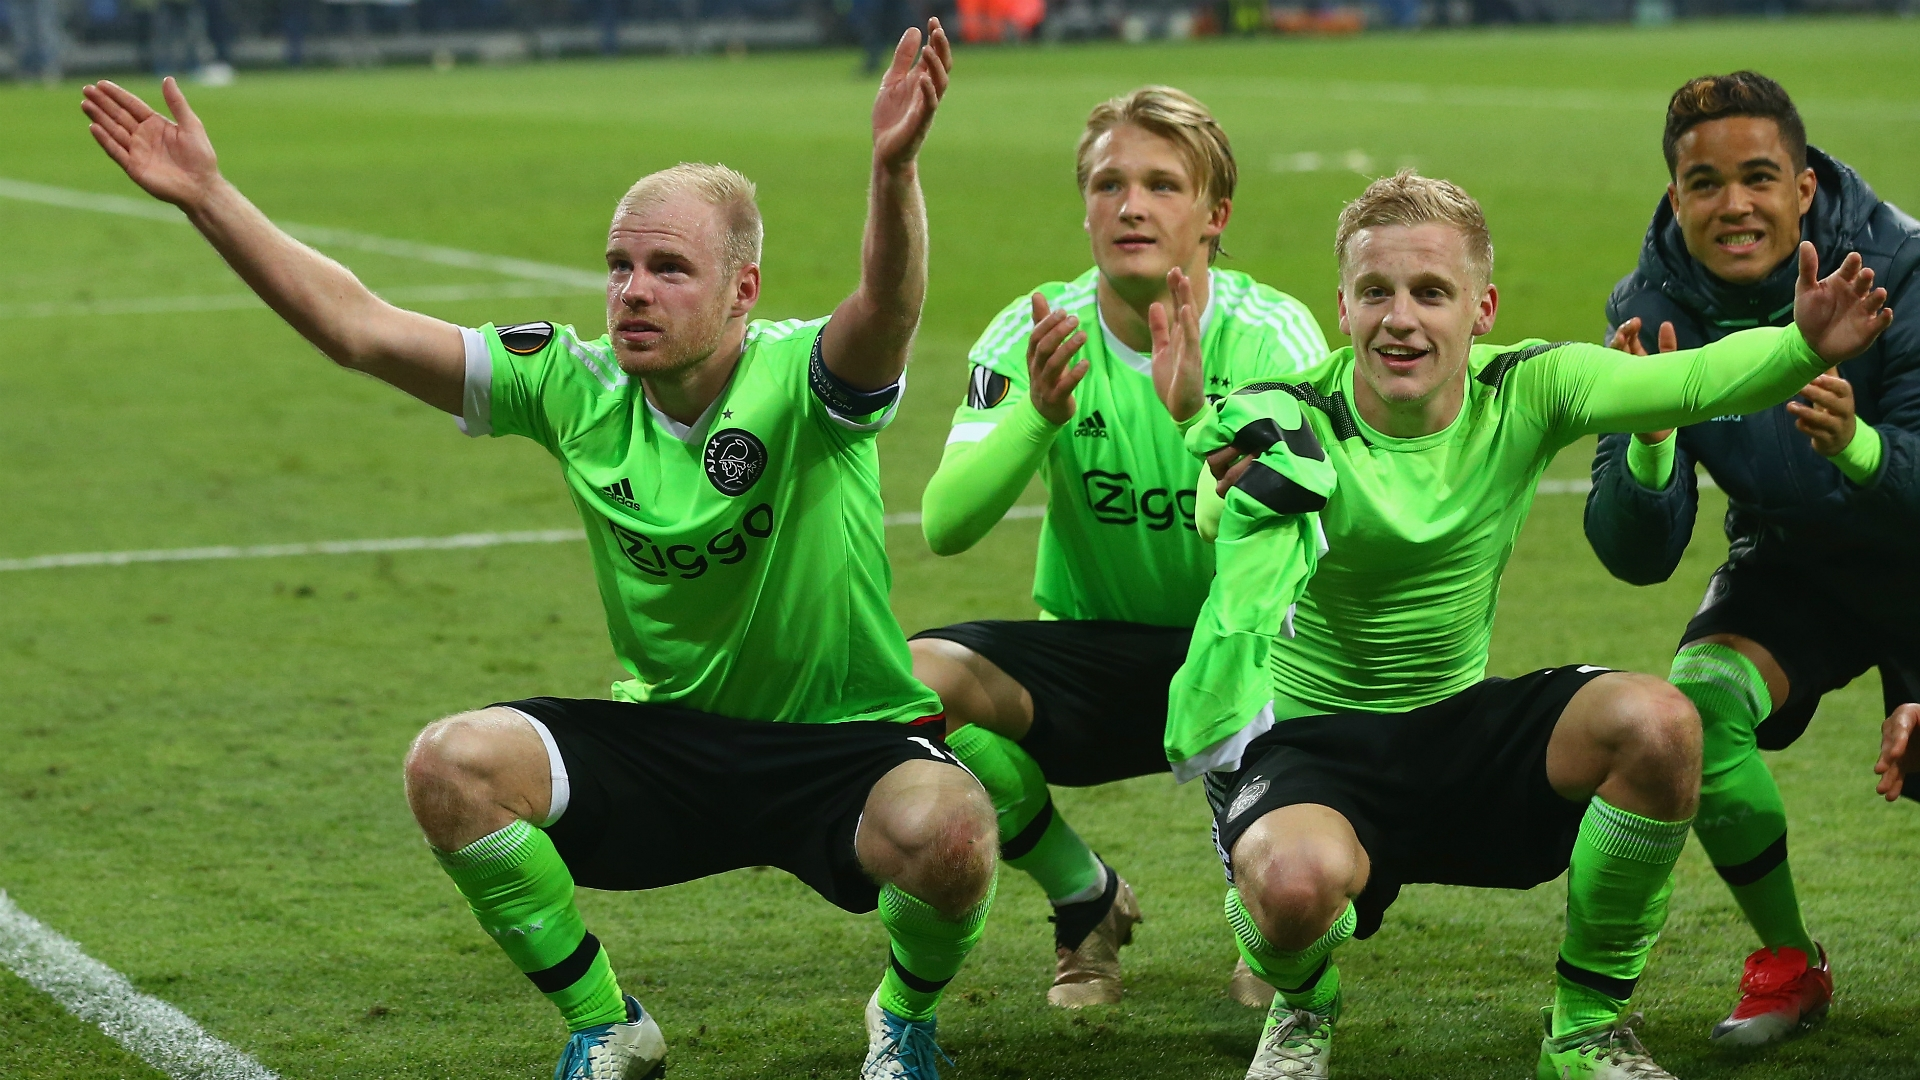 Klaassen was part of Ajax's impressive side that reached the Europa League final this season